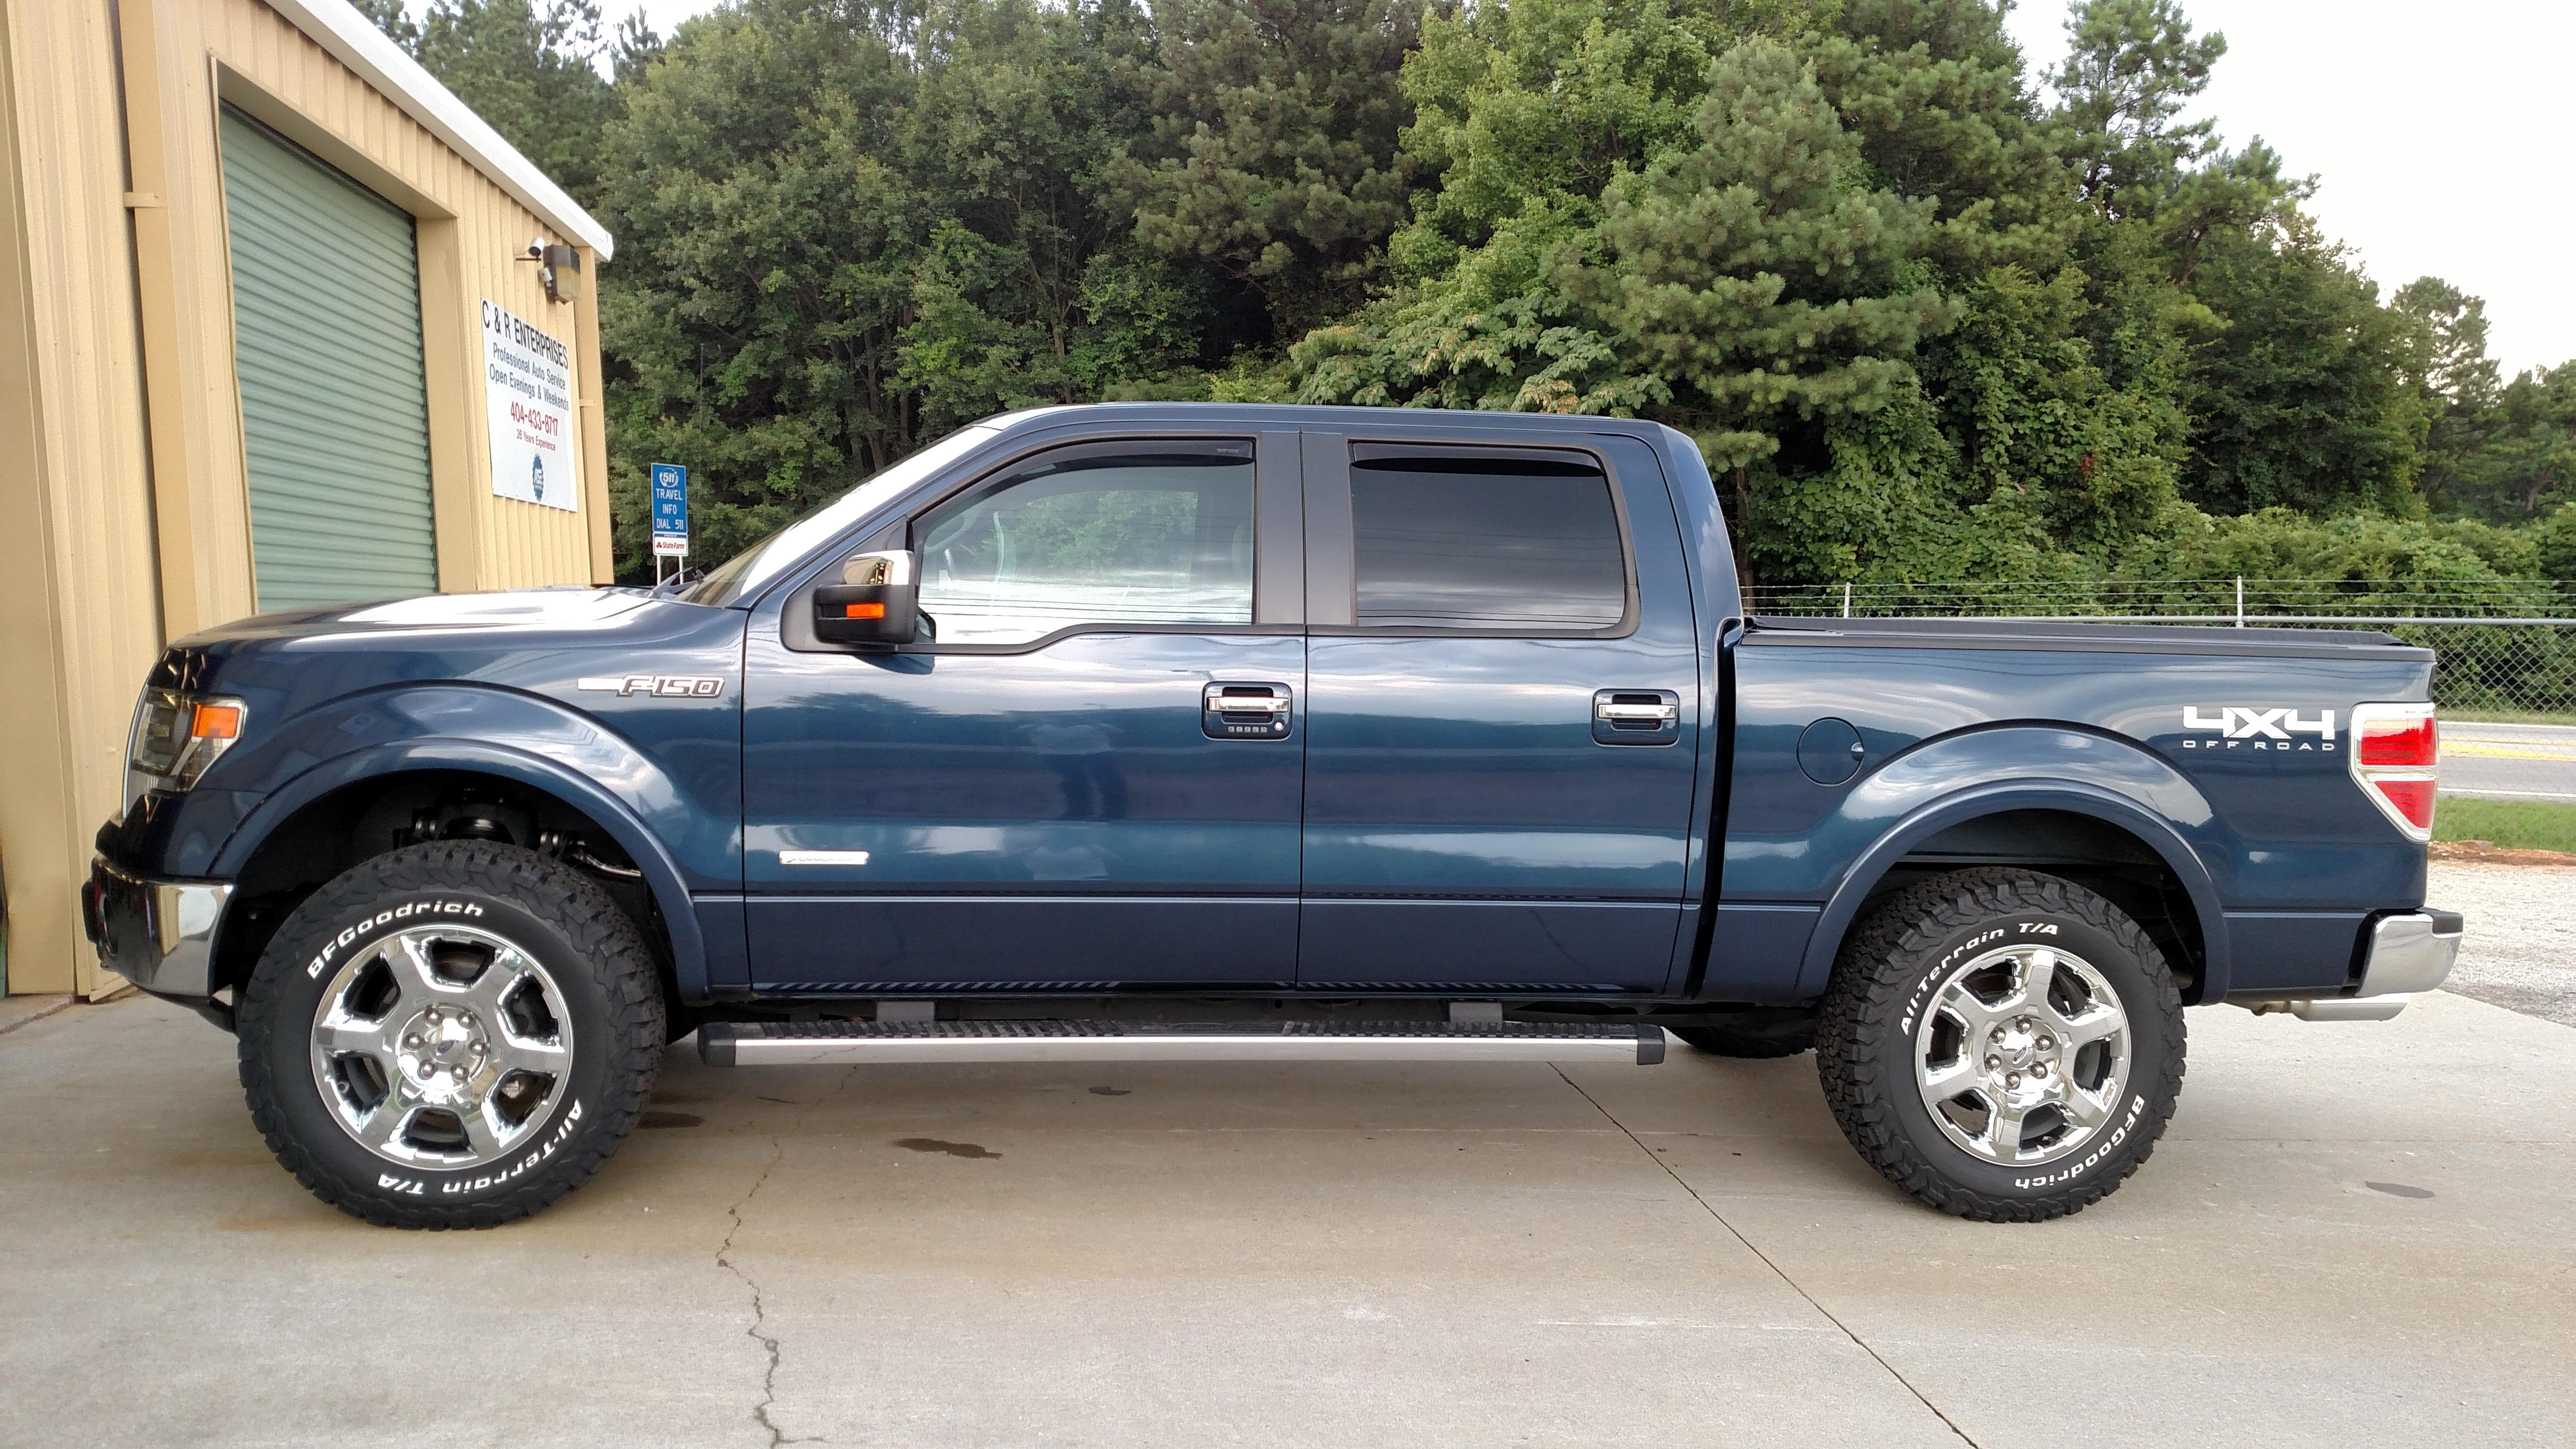 Name new tires on f150 jpg views 18100 size 1 93 mb